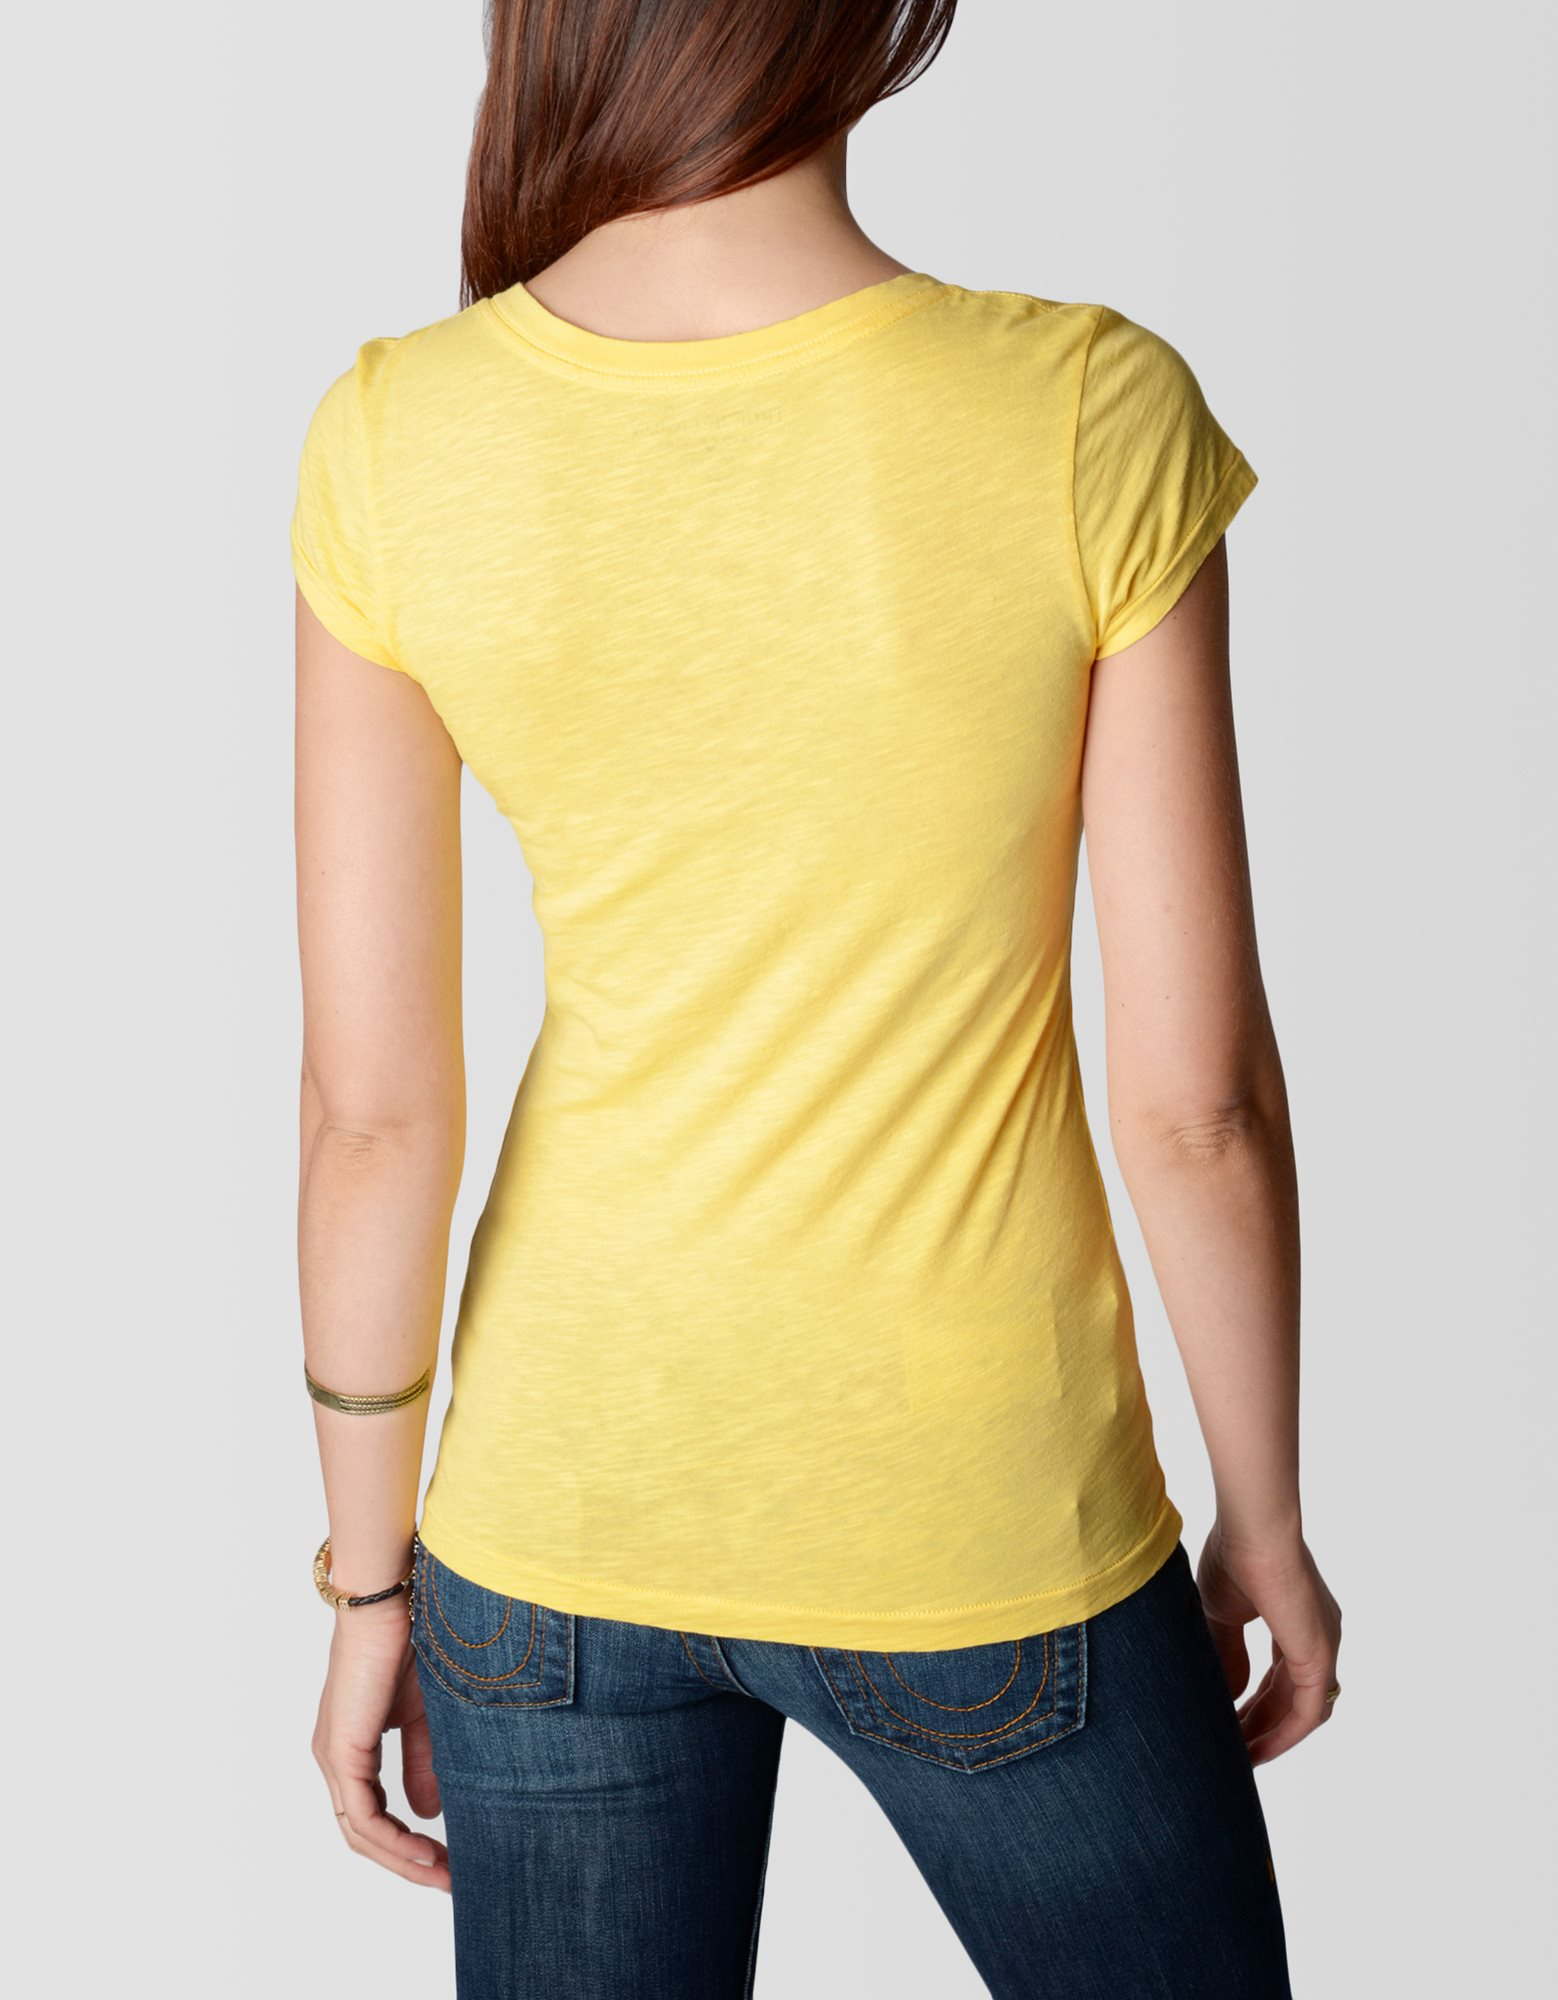 true religion find yourself in the music vneck womens t